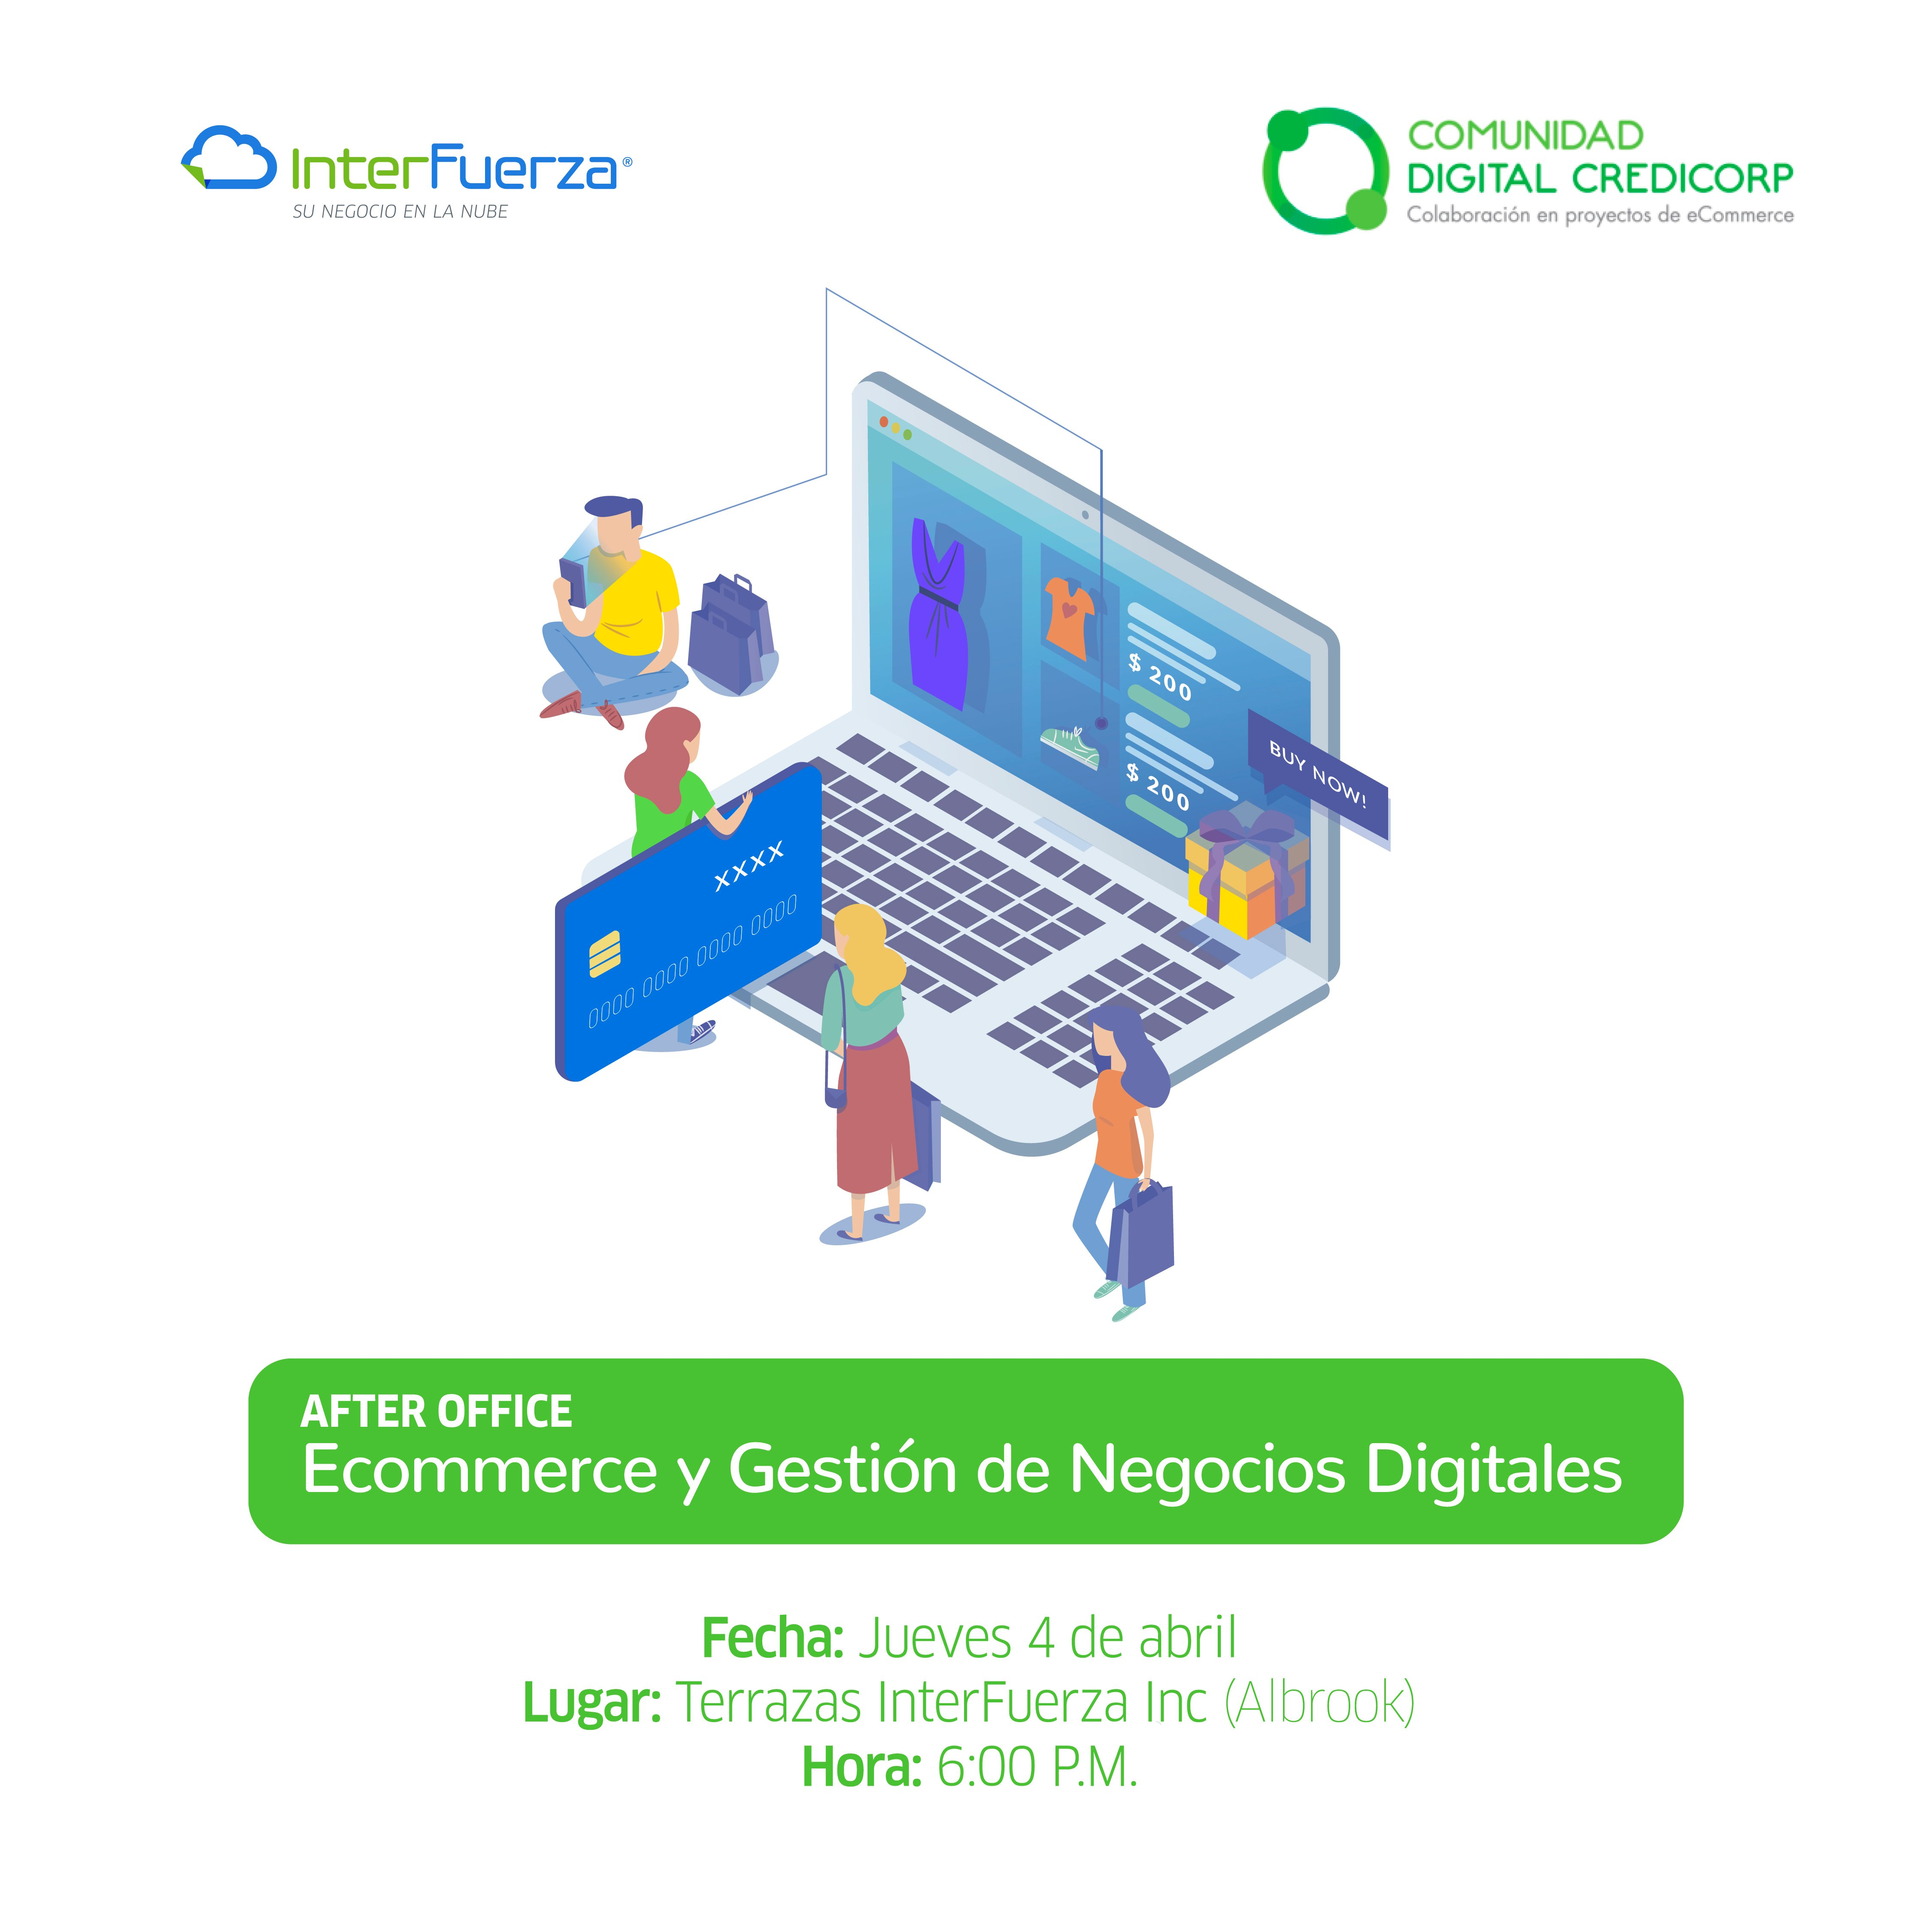 Ecommerce and Digital Business Management Thursday April 4th at 6:00 PM